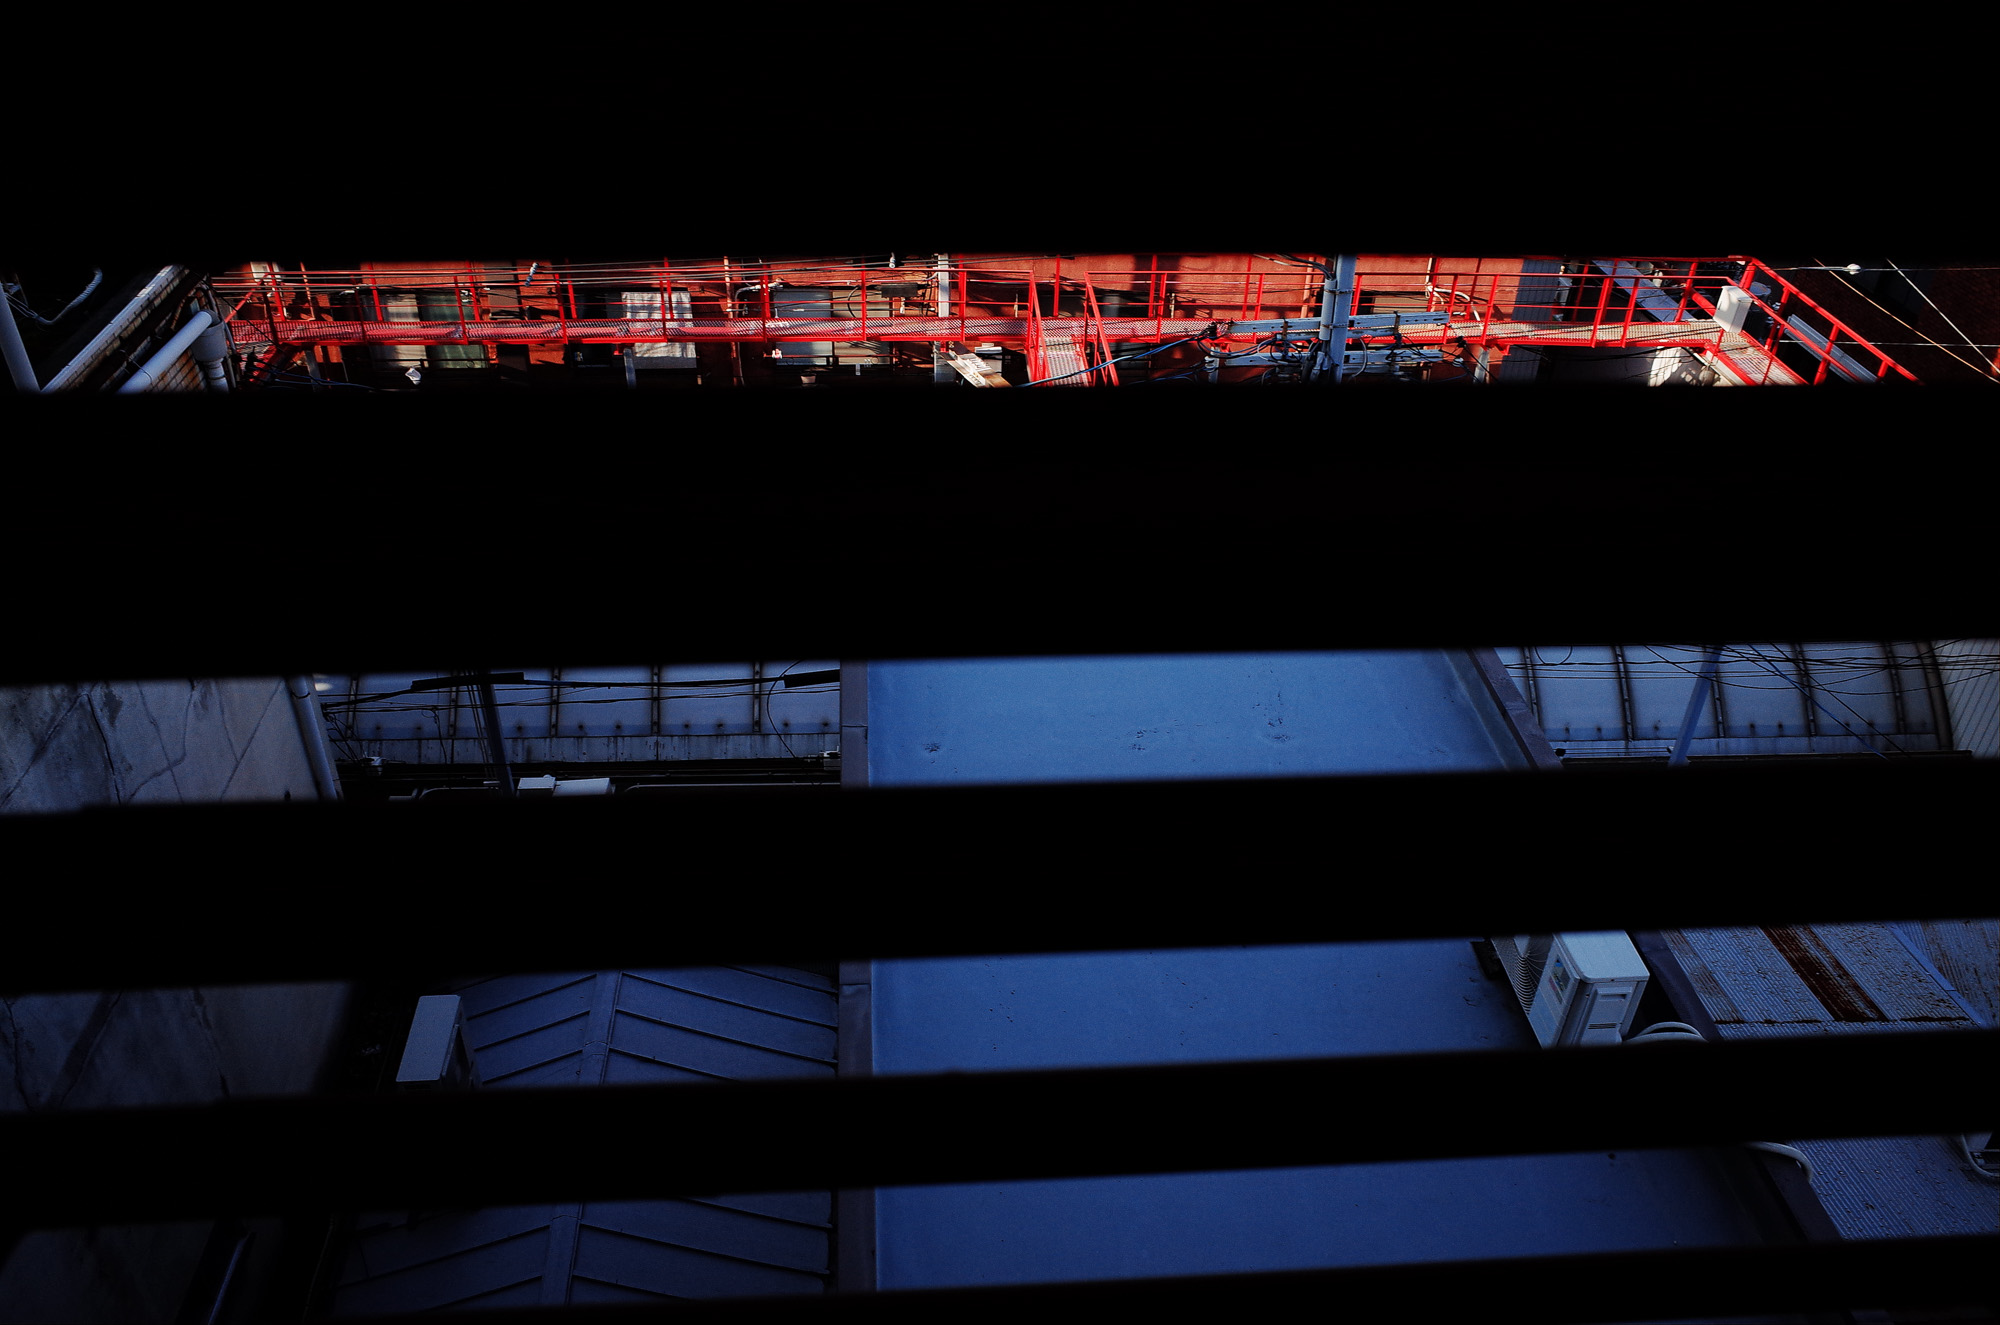 Red and blue abstract, shot from a high staircase, looking through slits, and capturing things far away in the background. Osaka, 2018